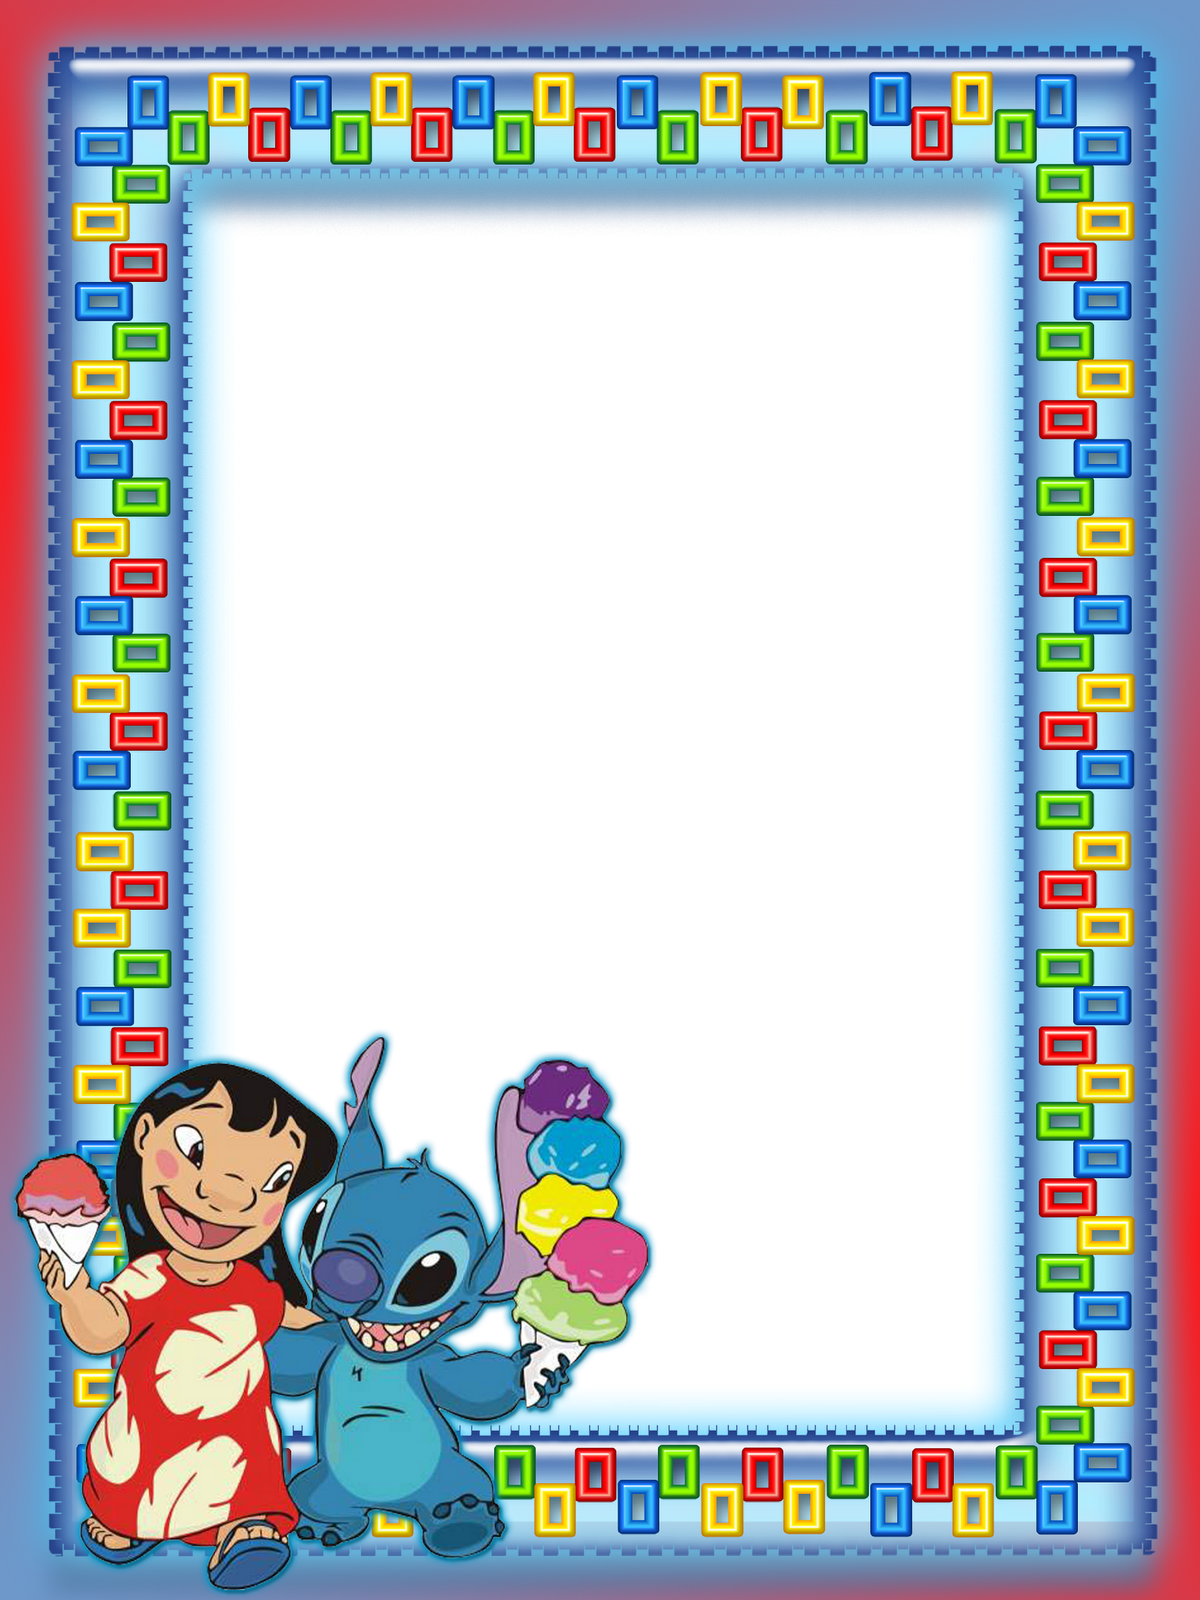 Lilo And Stitch Kids Transparent Photo Frame | DIPLOMA | Pinterest ...